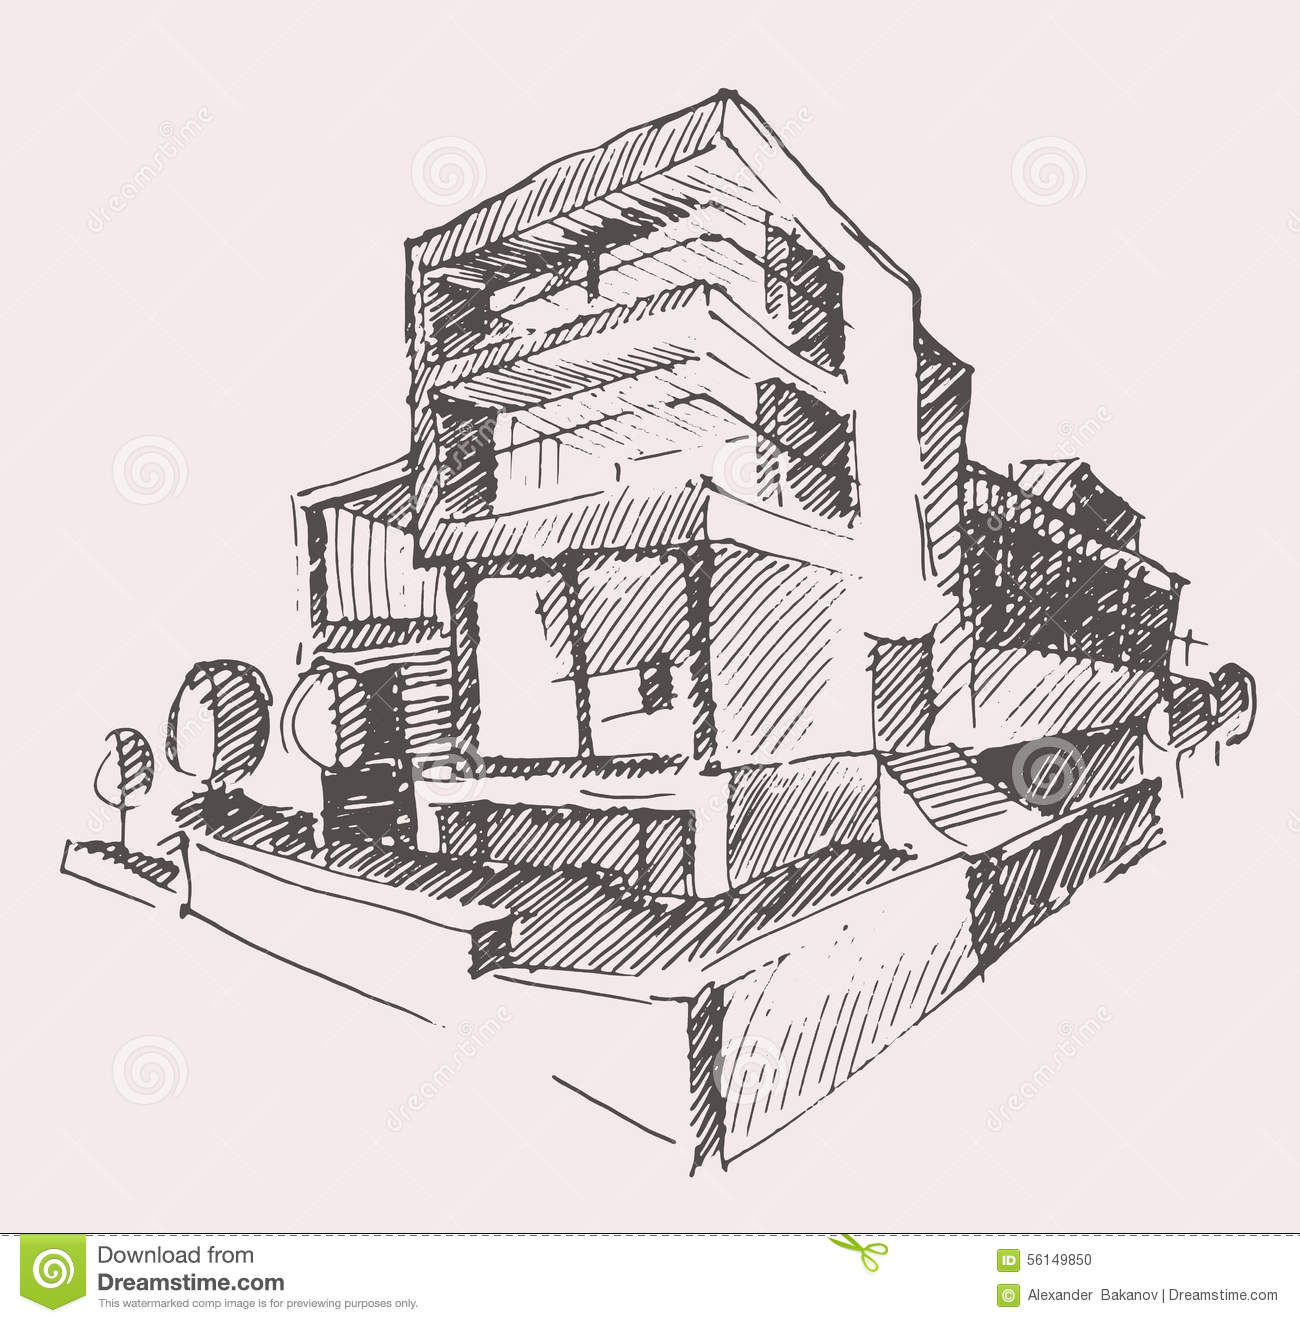 Architect Draft Modern New House Building Concept Stock